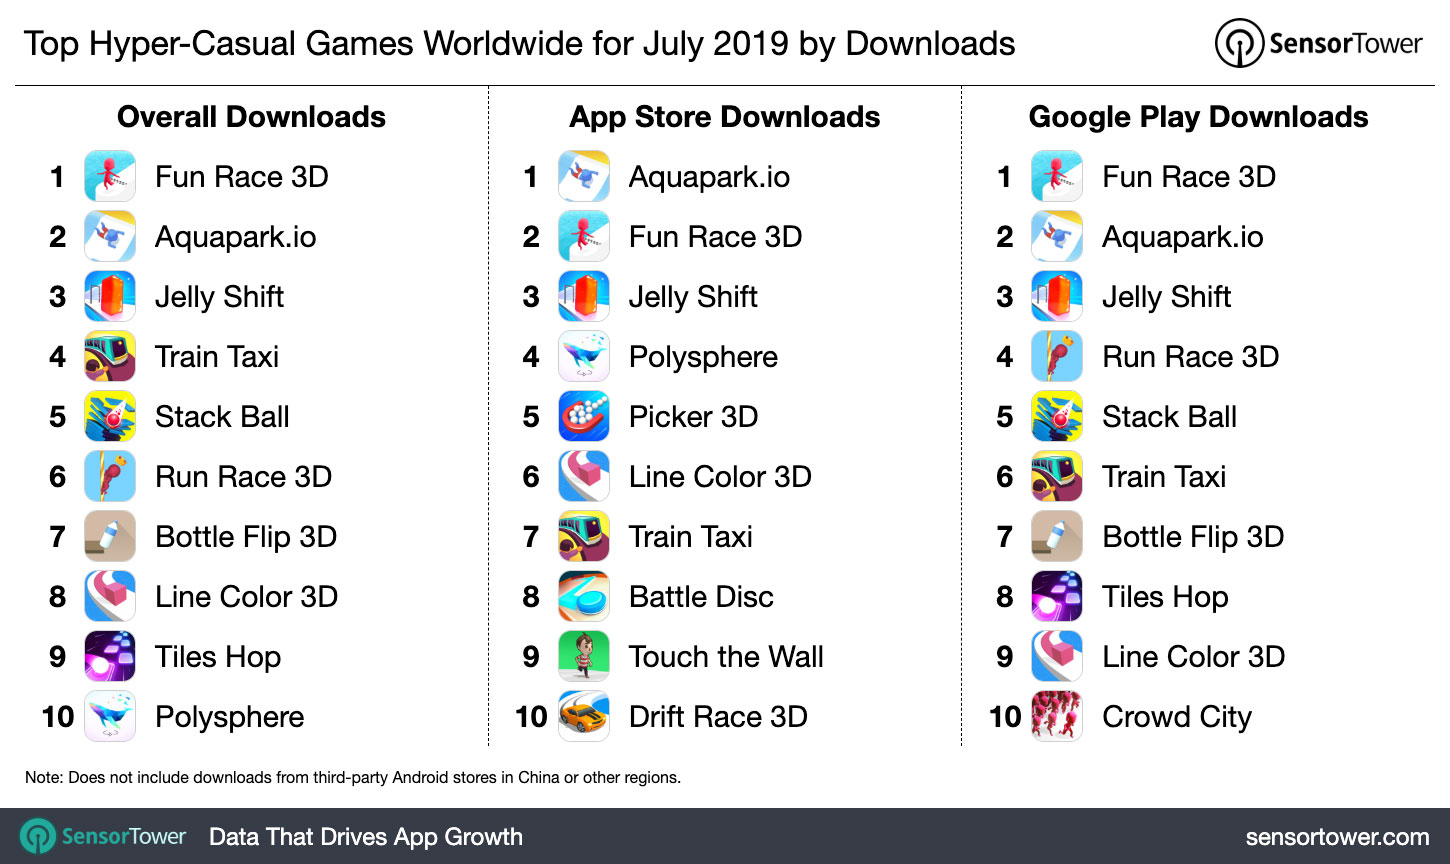 Top Hyper-Casual Games Worldwide for July 2019 by Downloads